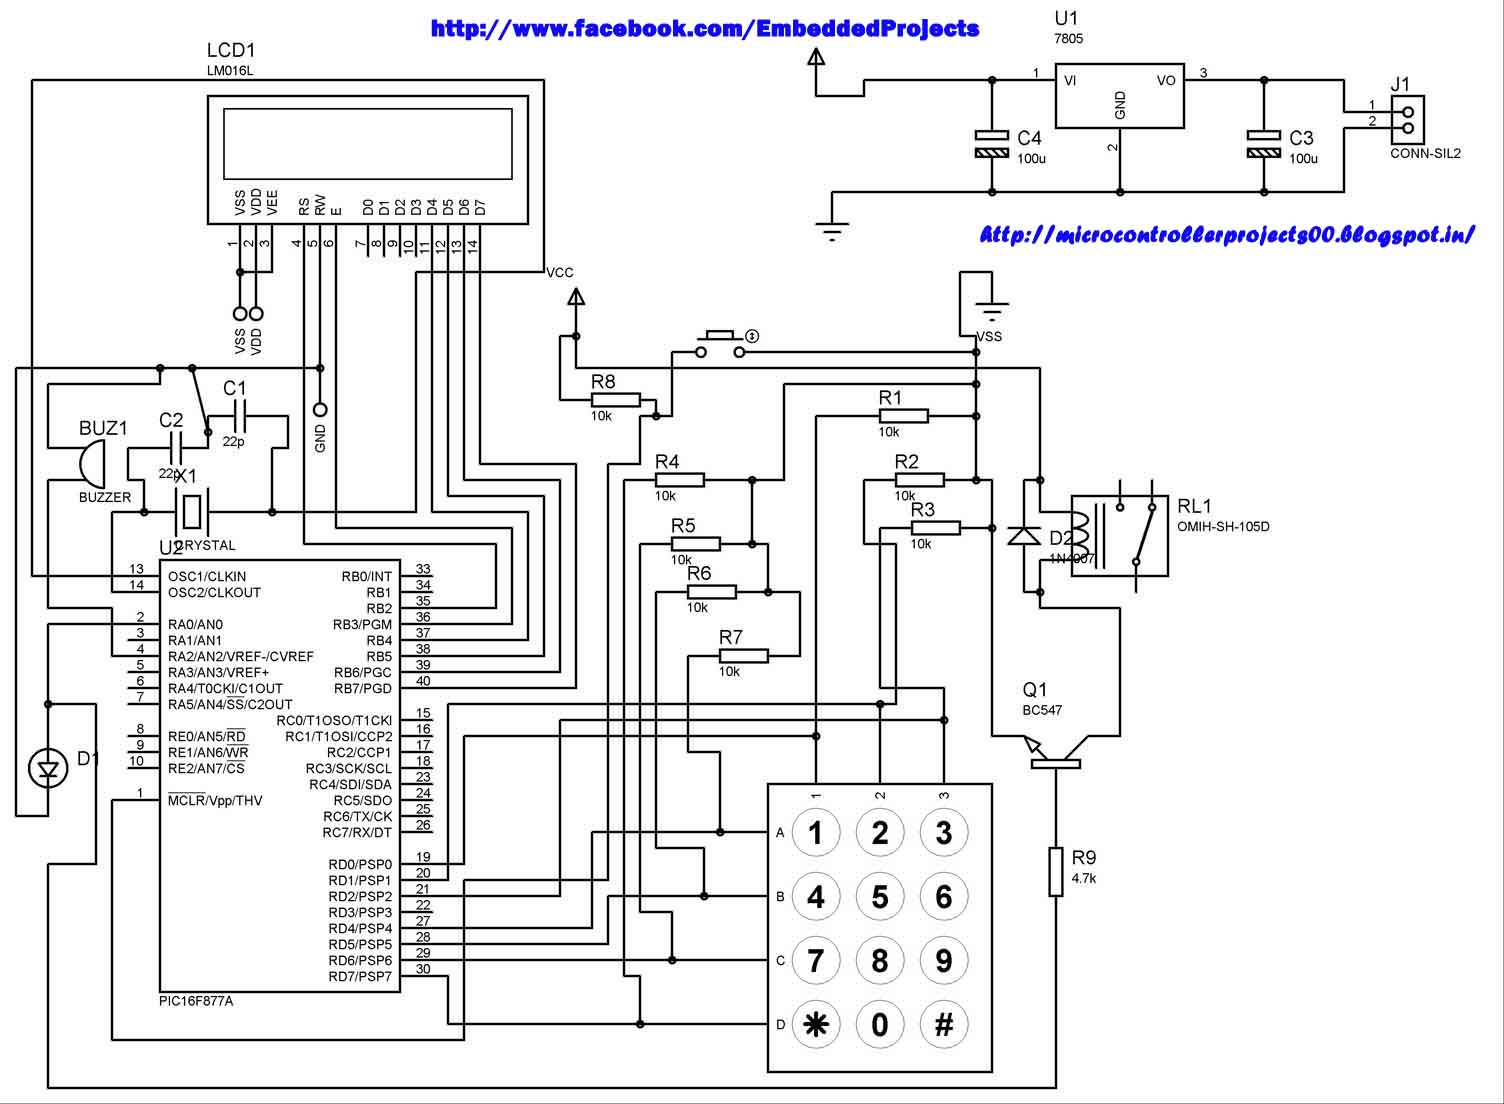 Pic Microcontroller Based Electronic Lock Circuits Projects Tutorials Electronics Embedded Systems Blog